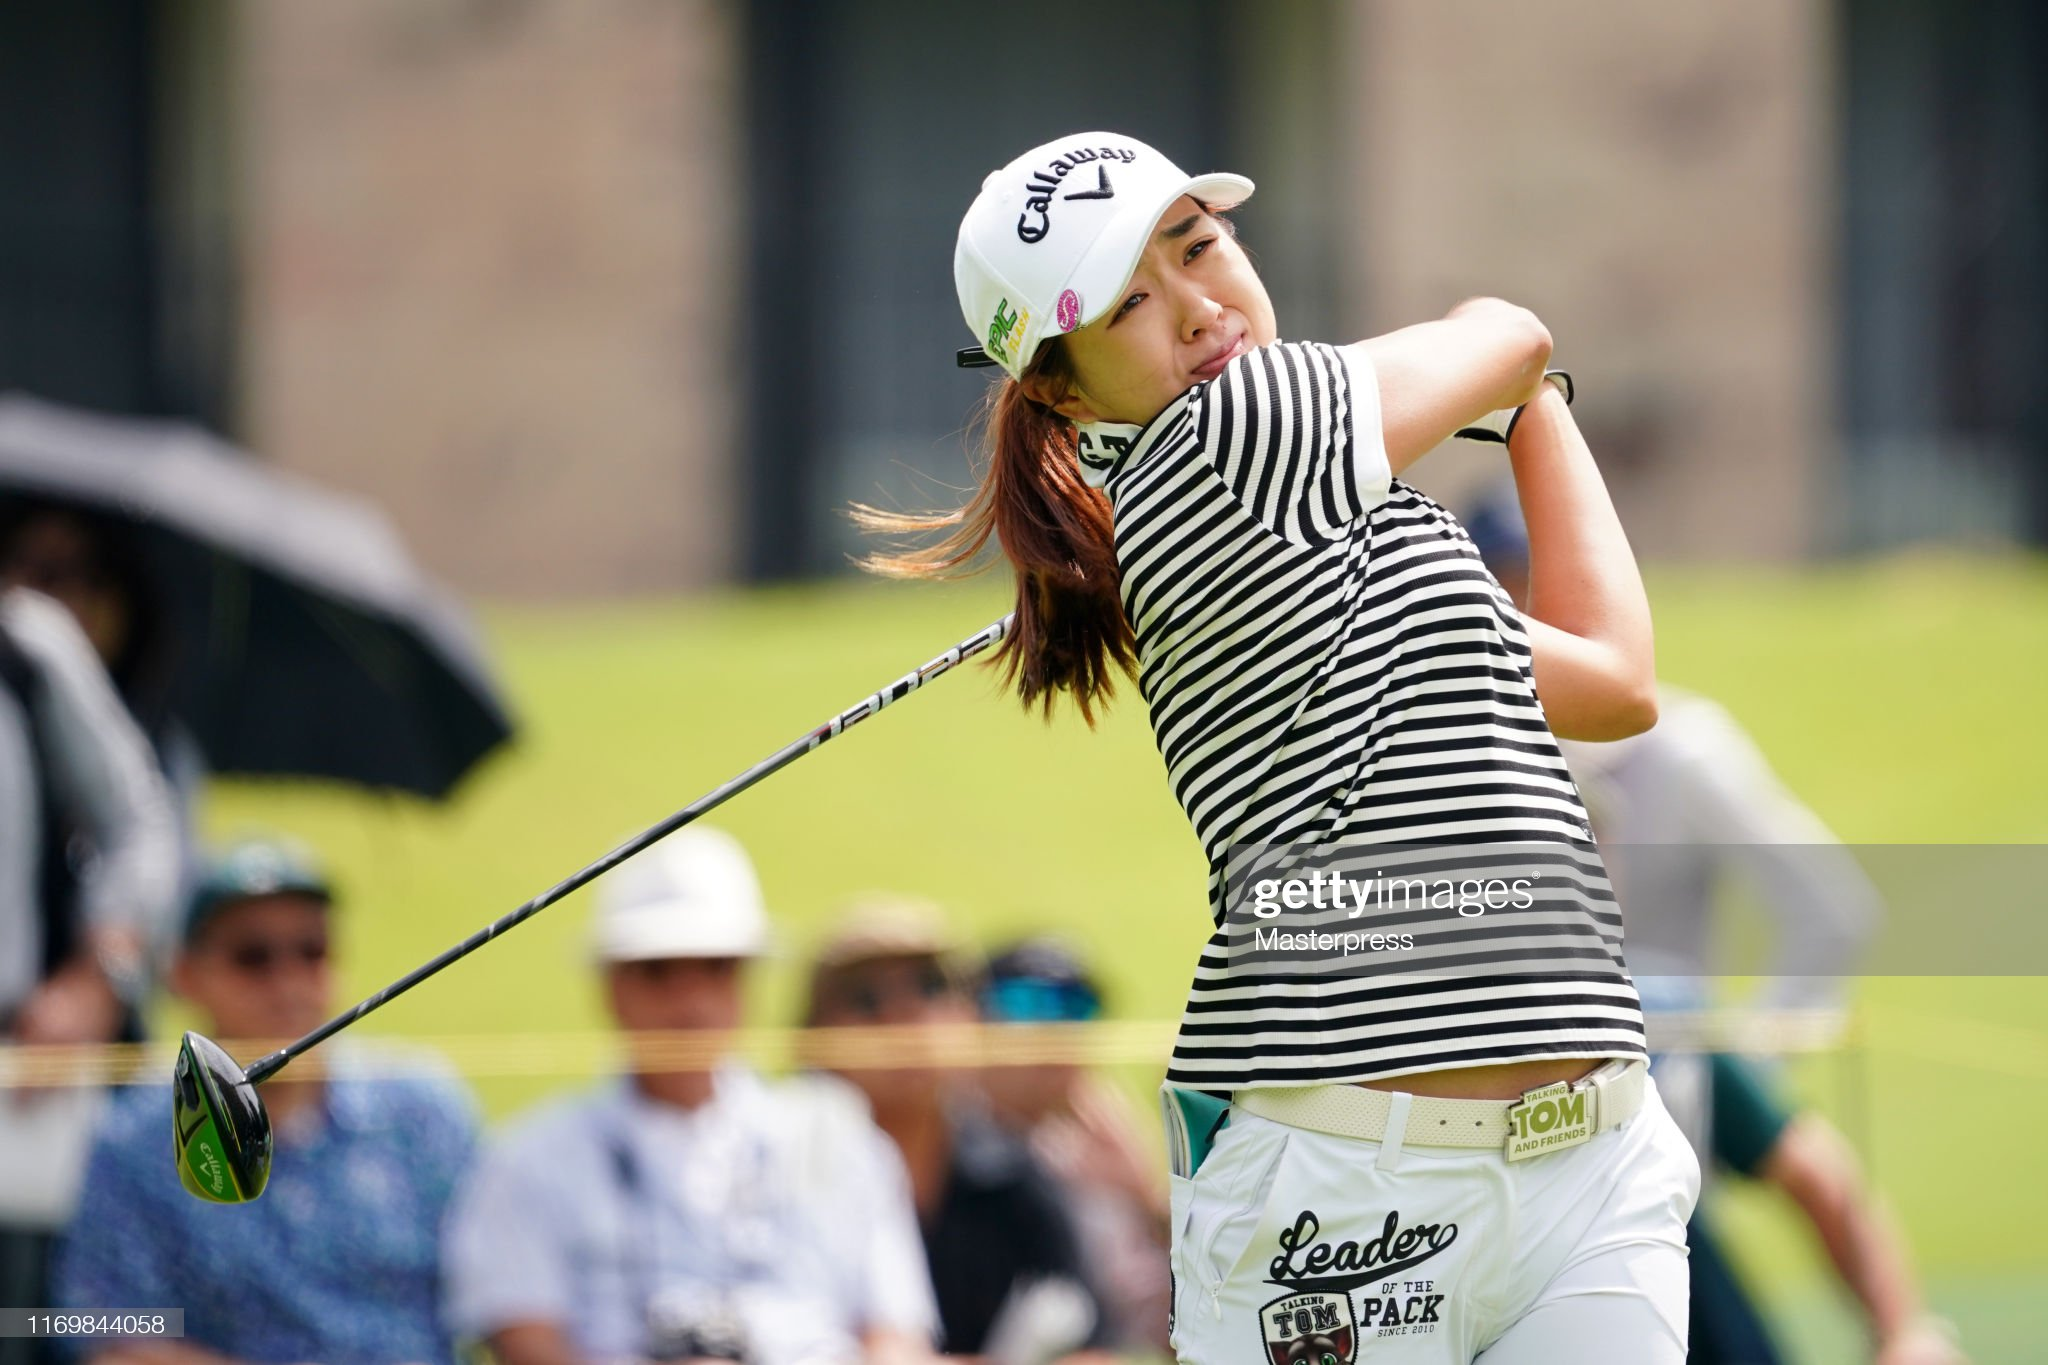 https://media.gettyimages.com/photos/solar-lee-of-south-korea-hits-her-tee-shot-on-the-10th-hole-during-picture-id1169844058?s=2048x2048